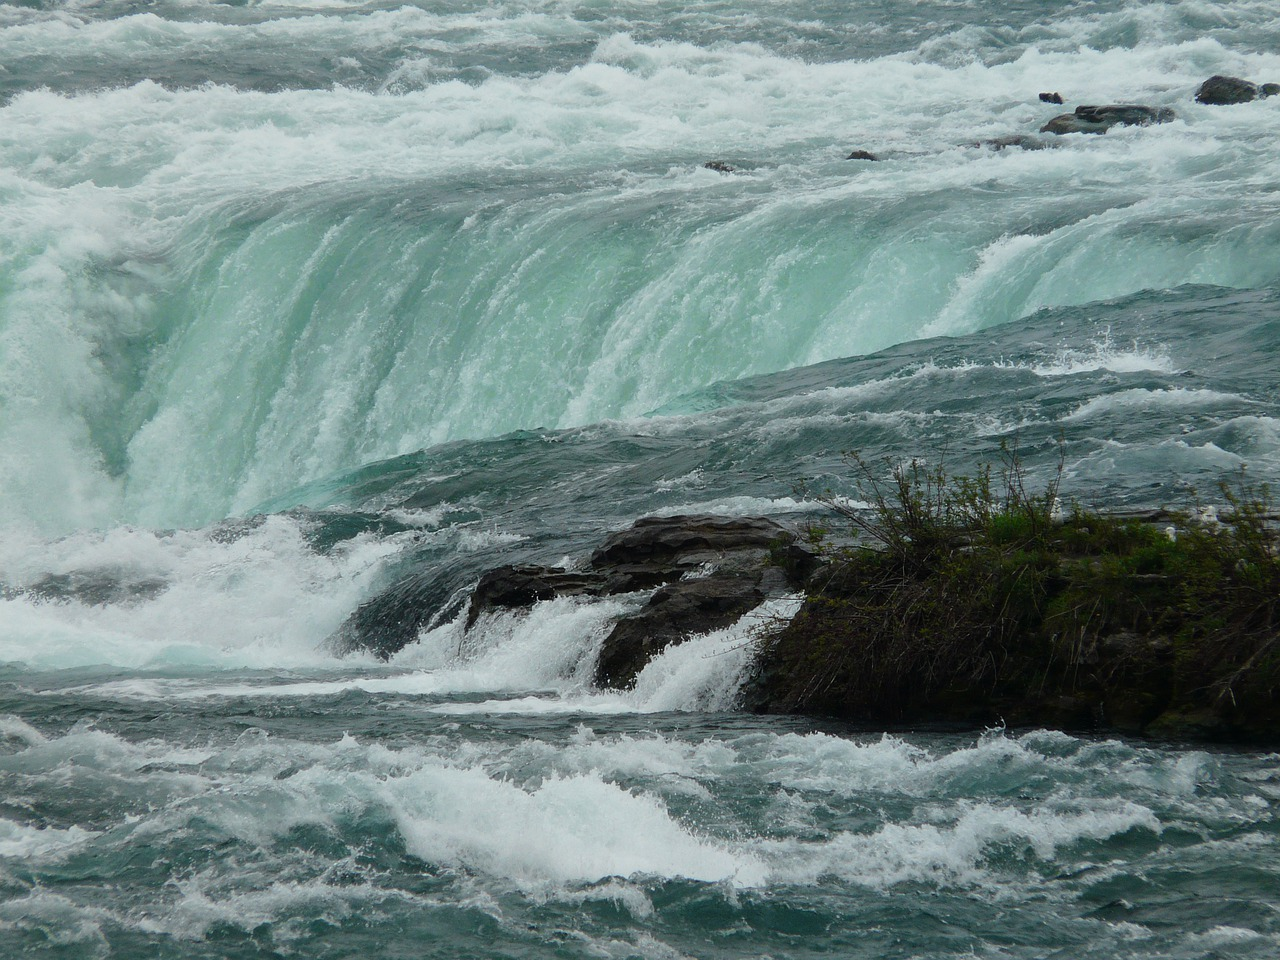 Erosion at the base of Niagara Falls (USA) undermines the shale cliffs and as a result, the falls have receded approximately 7 miles over the last 10,000 years.